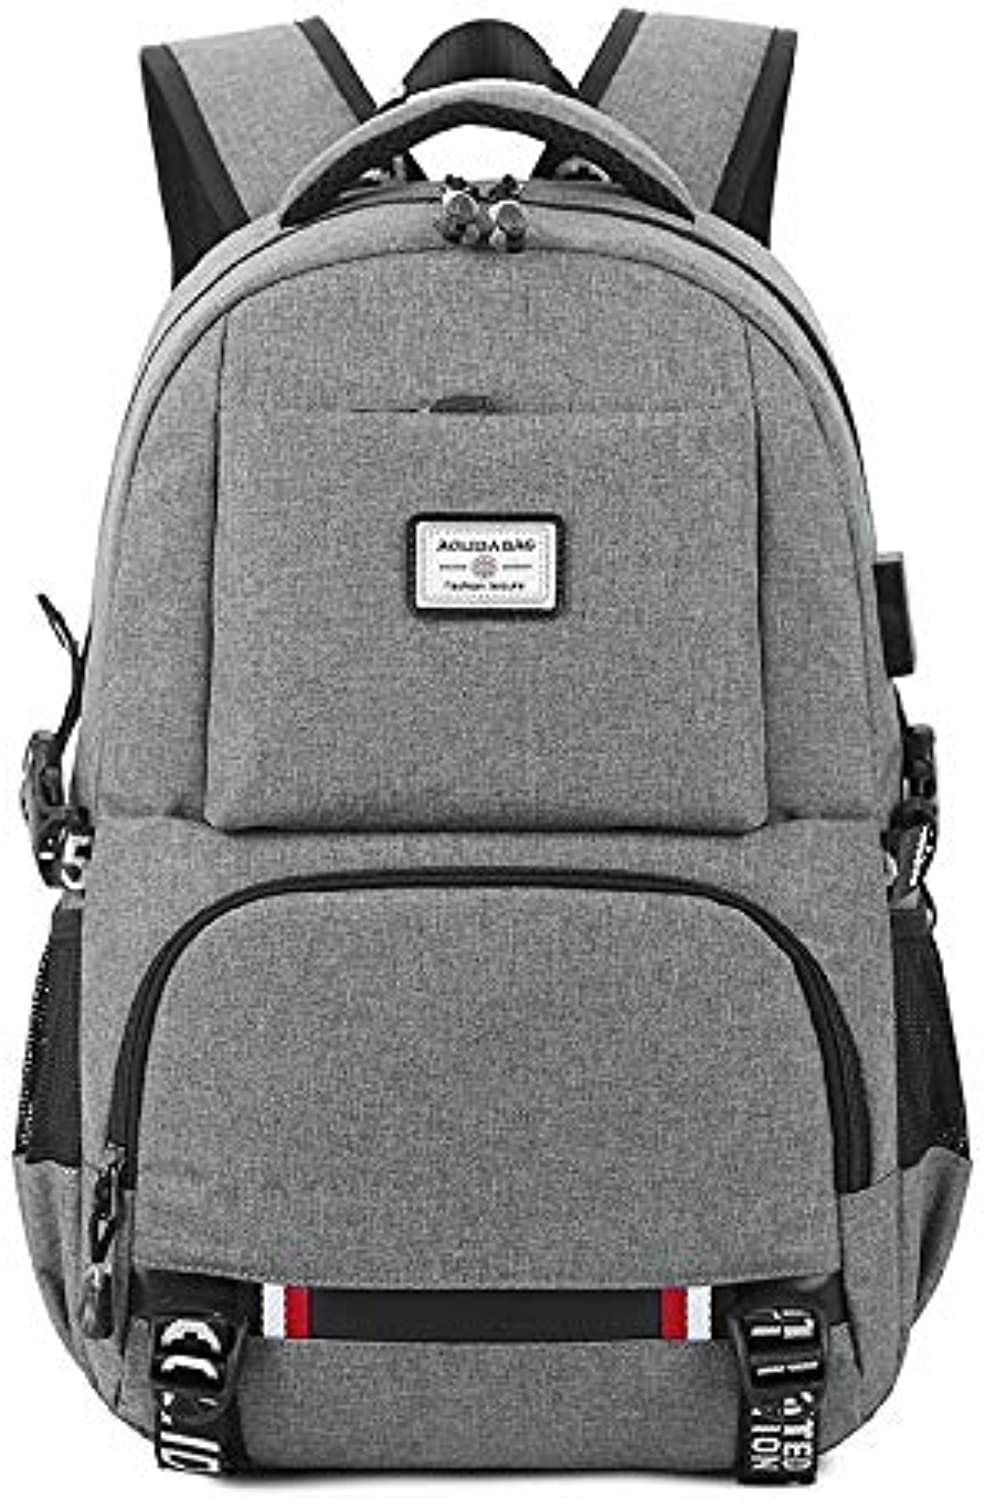 USB Computer Backpack Casual Bag Oxford Cloth Couple Backpack Travel Backpack (color   Grey, Size   18 inch)